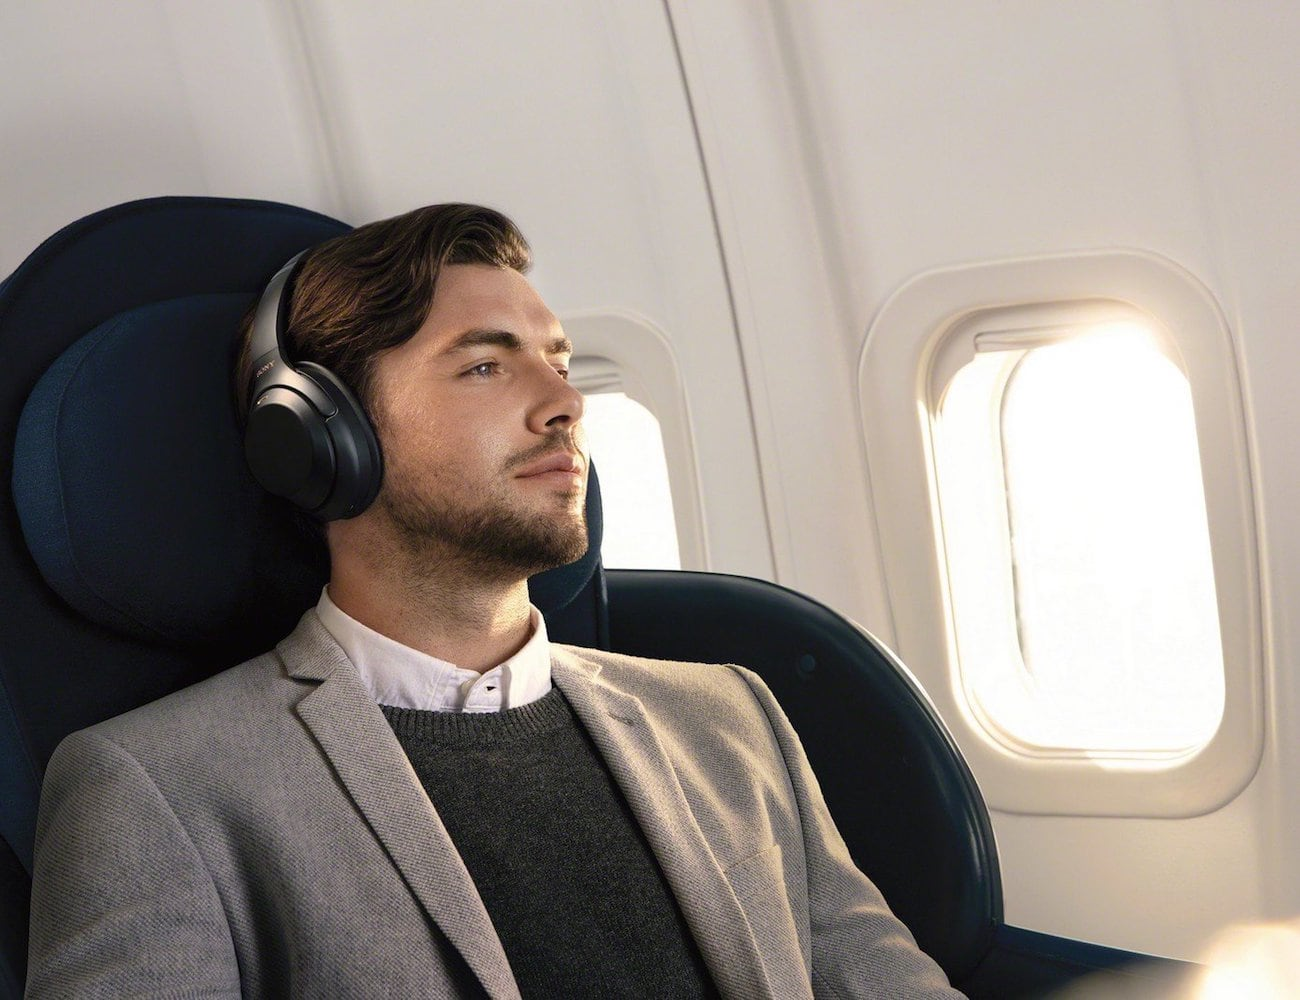 Sony 1000XM3 Wireless Noise-Canceling Headphones